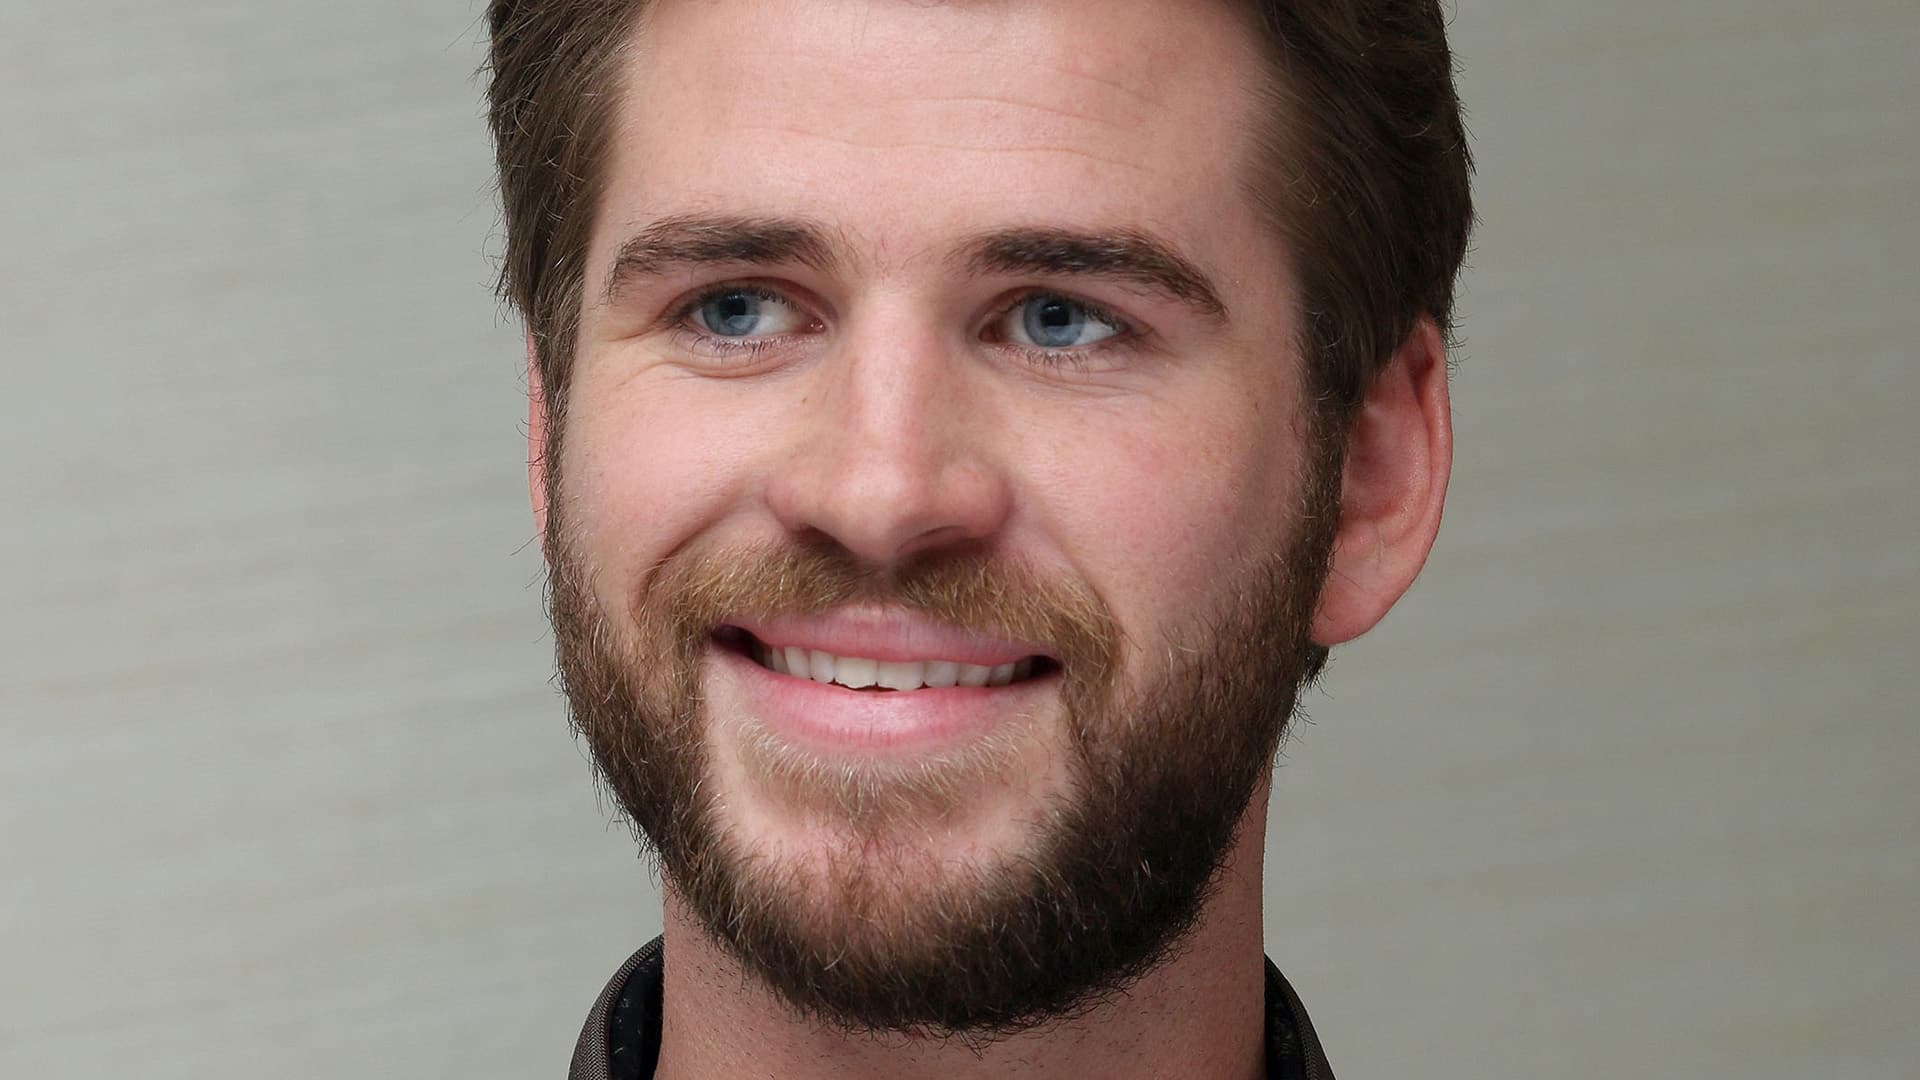 Pictures Of Liam Hemsworth Beard Full Hd on Hd Technology For Cars